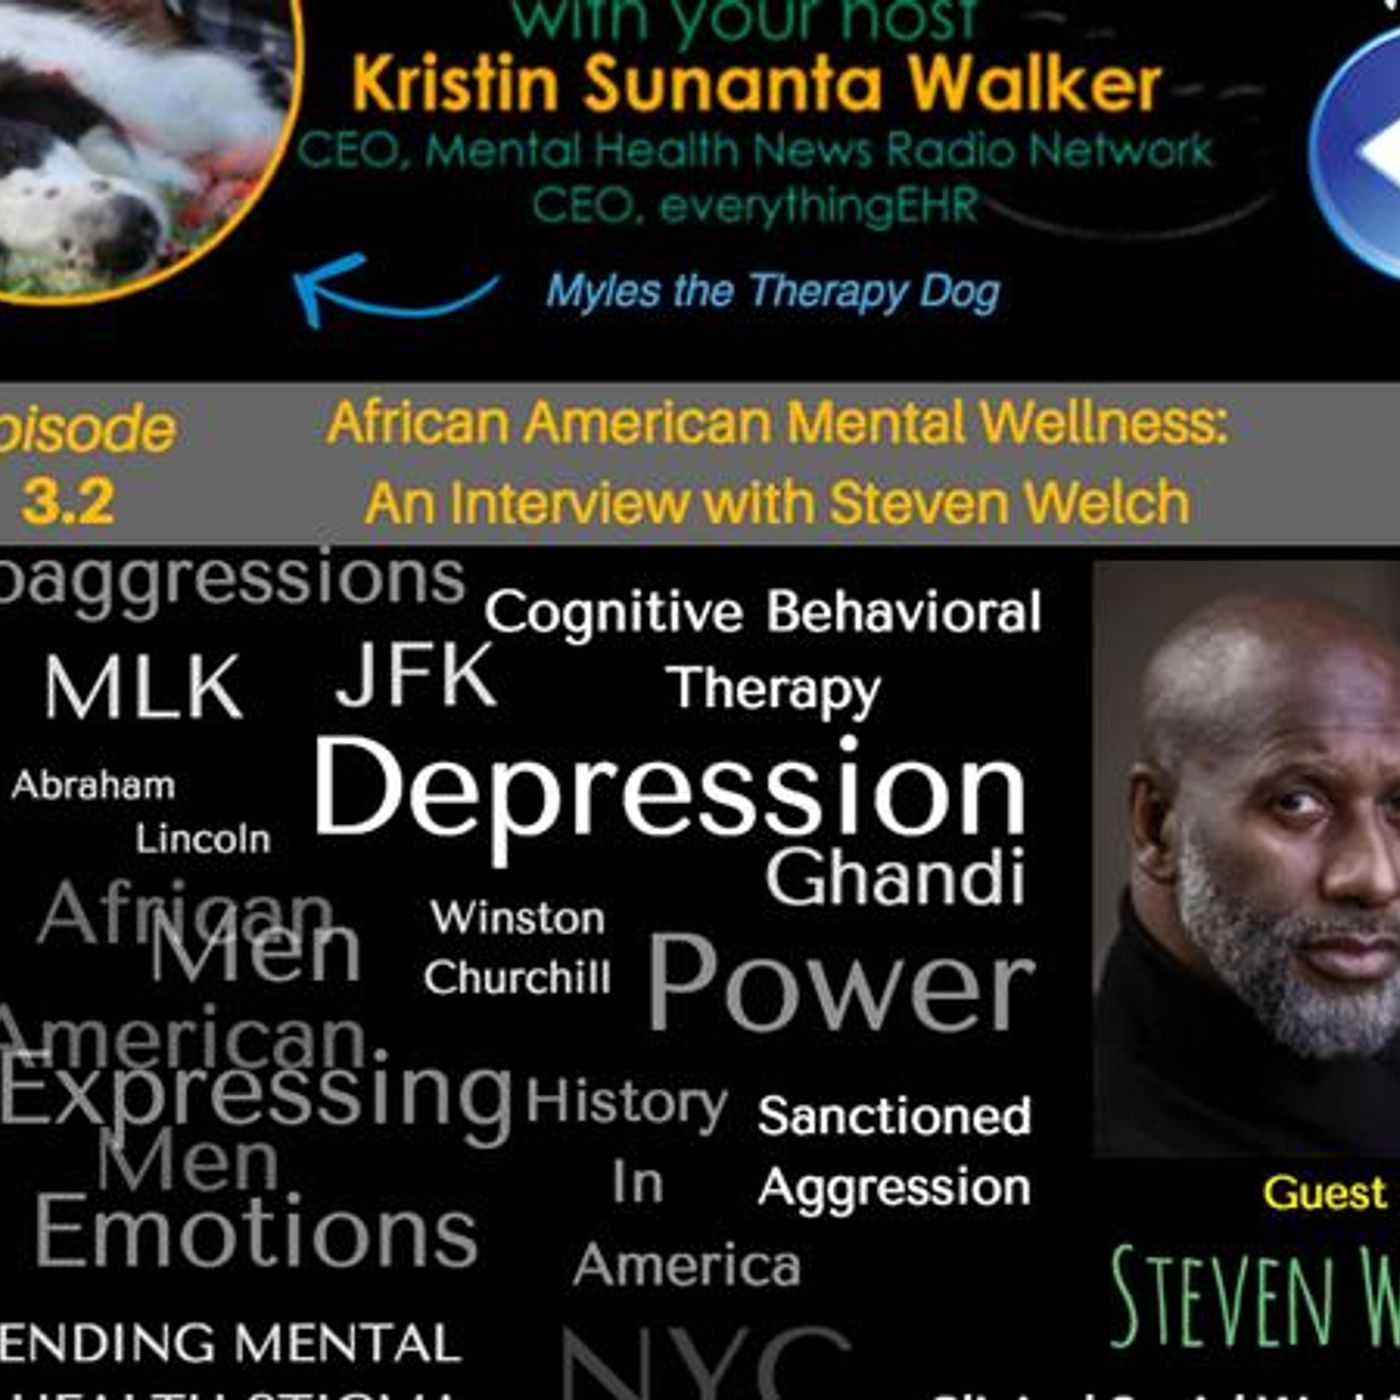 Mental Health News Radio - African American Mental Wellness: An Interview with Counselor Steven Welch 3.2